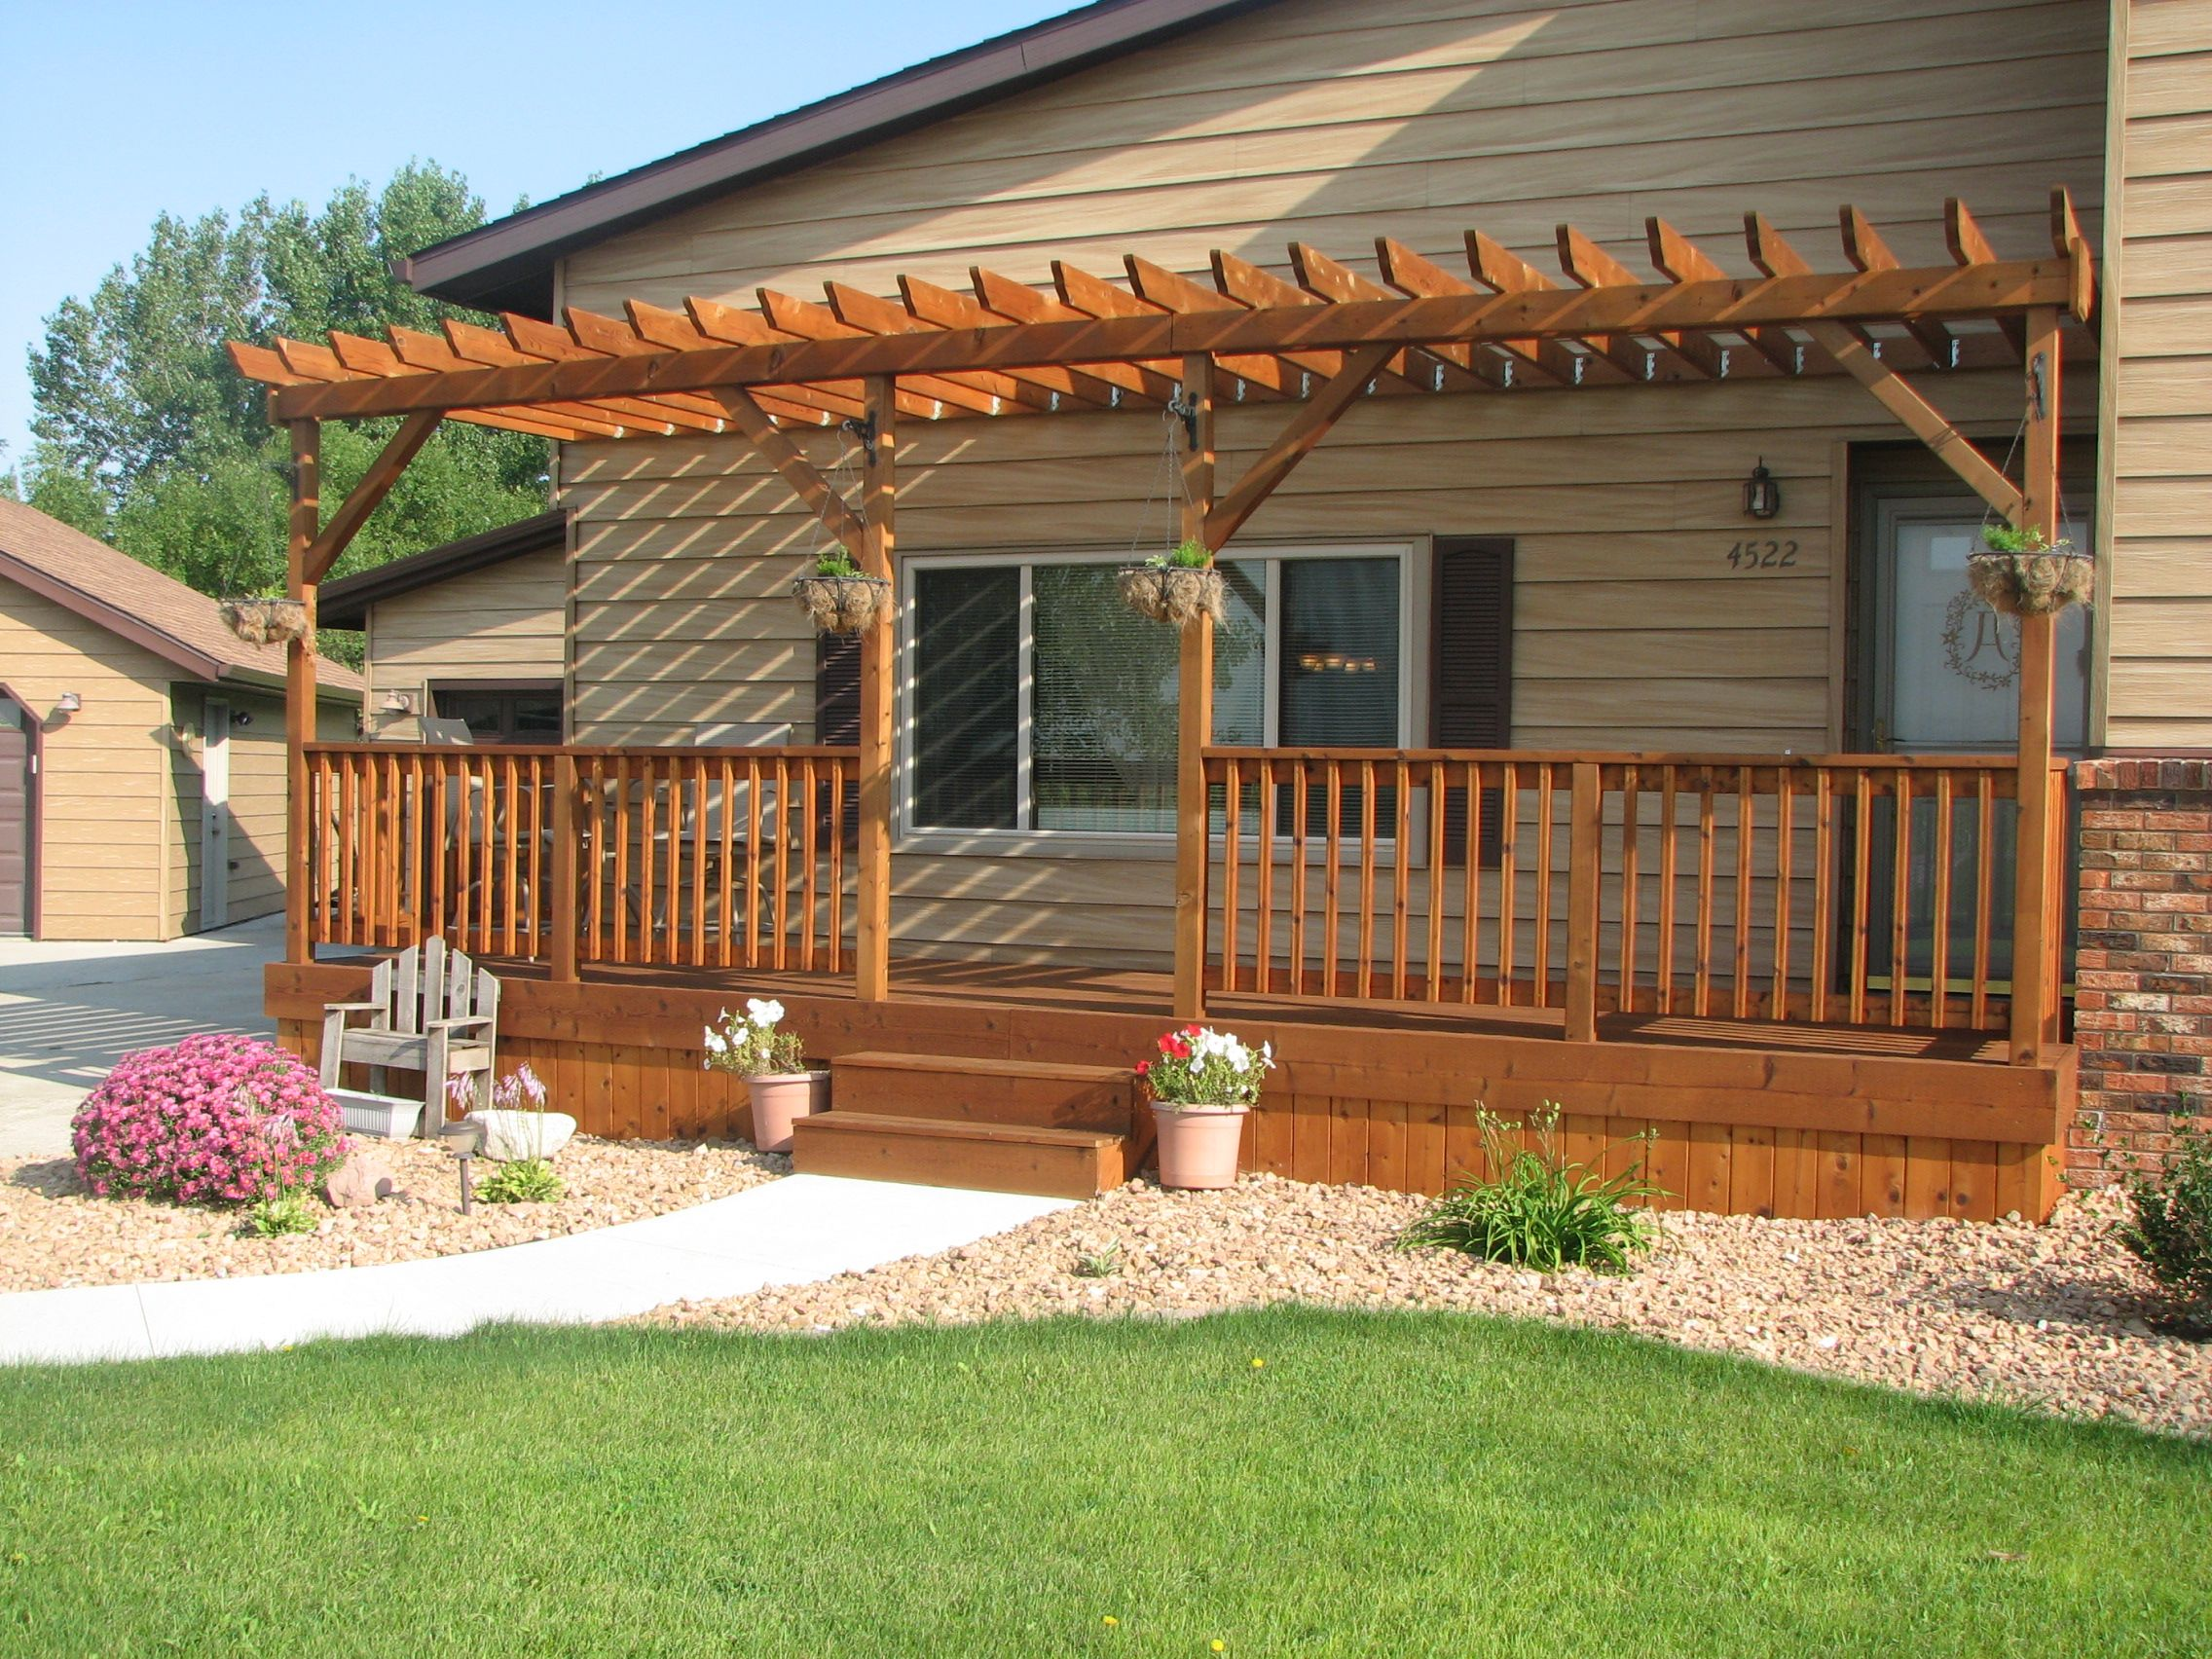 Dreaming is free front porch pergola pergola ideas and for Front porch patio ideas